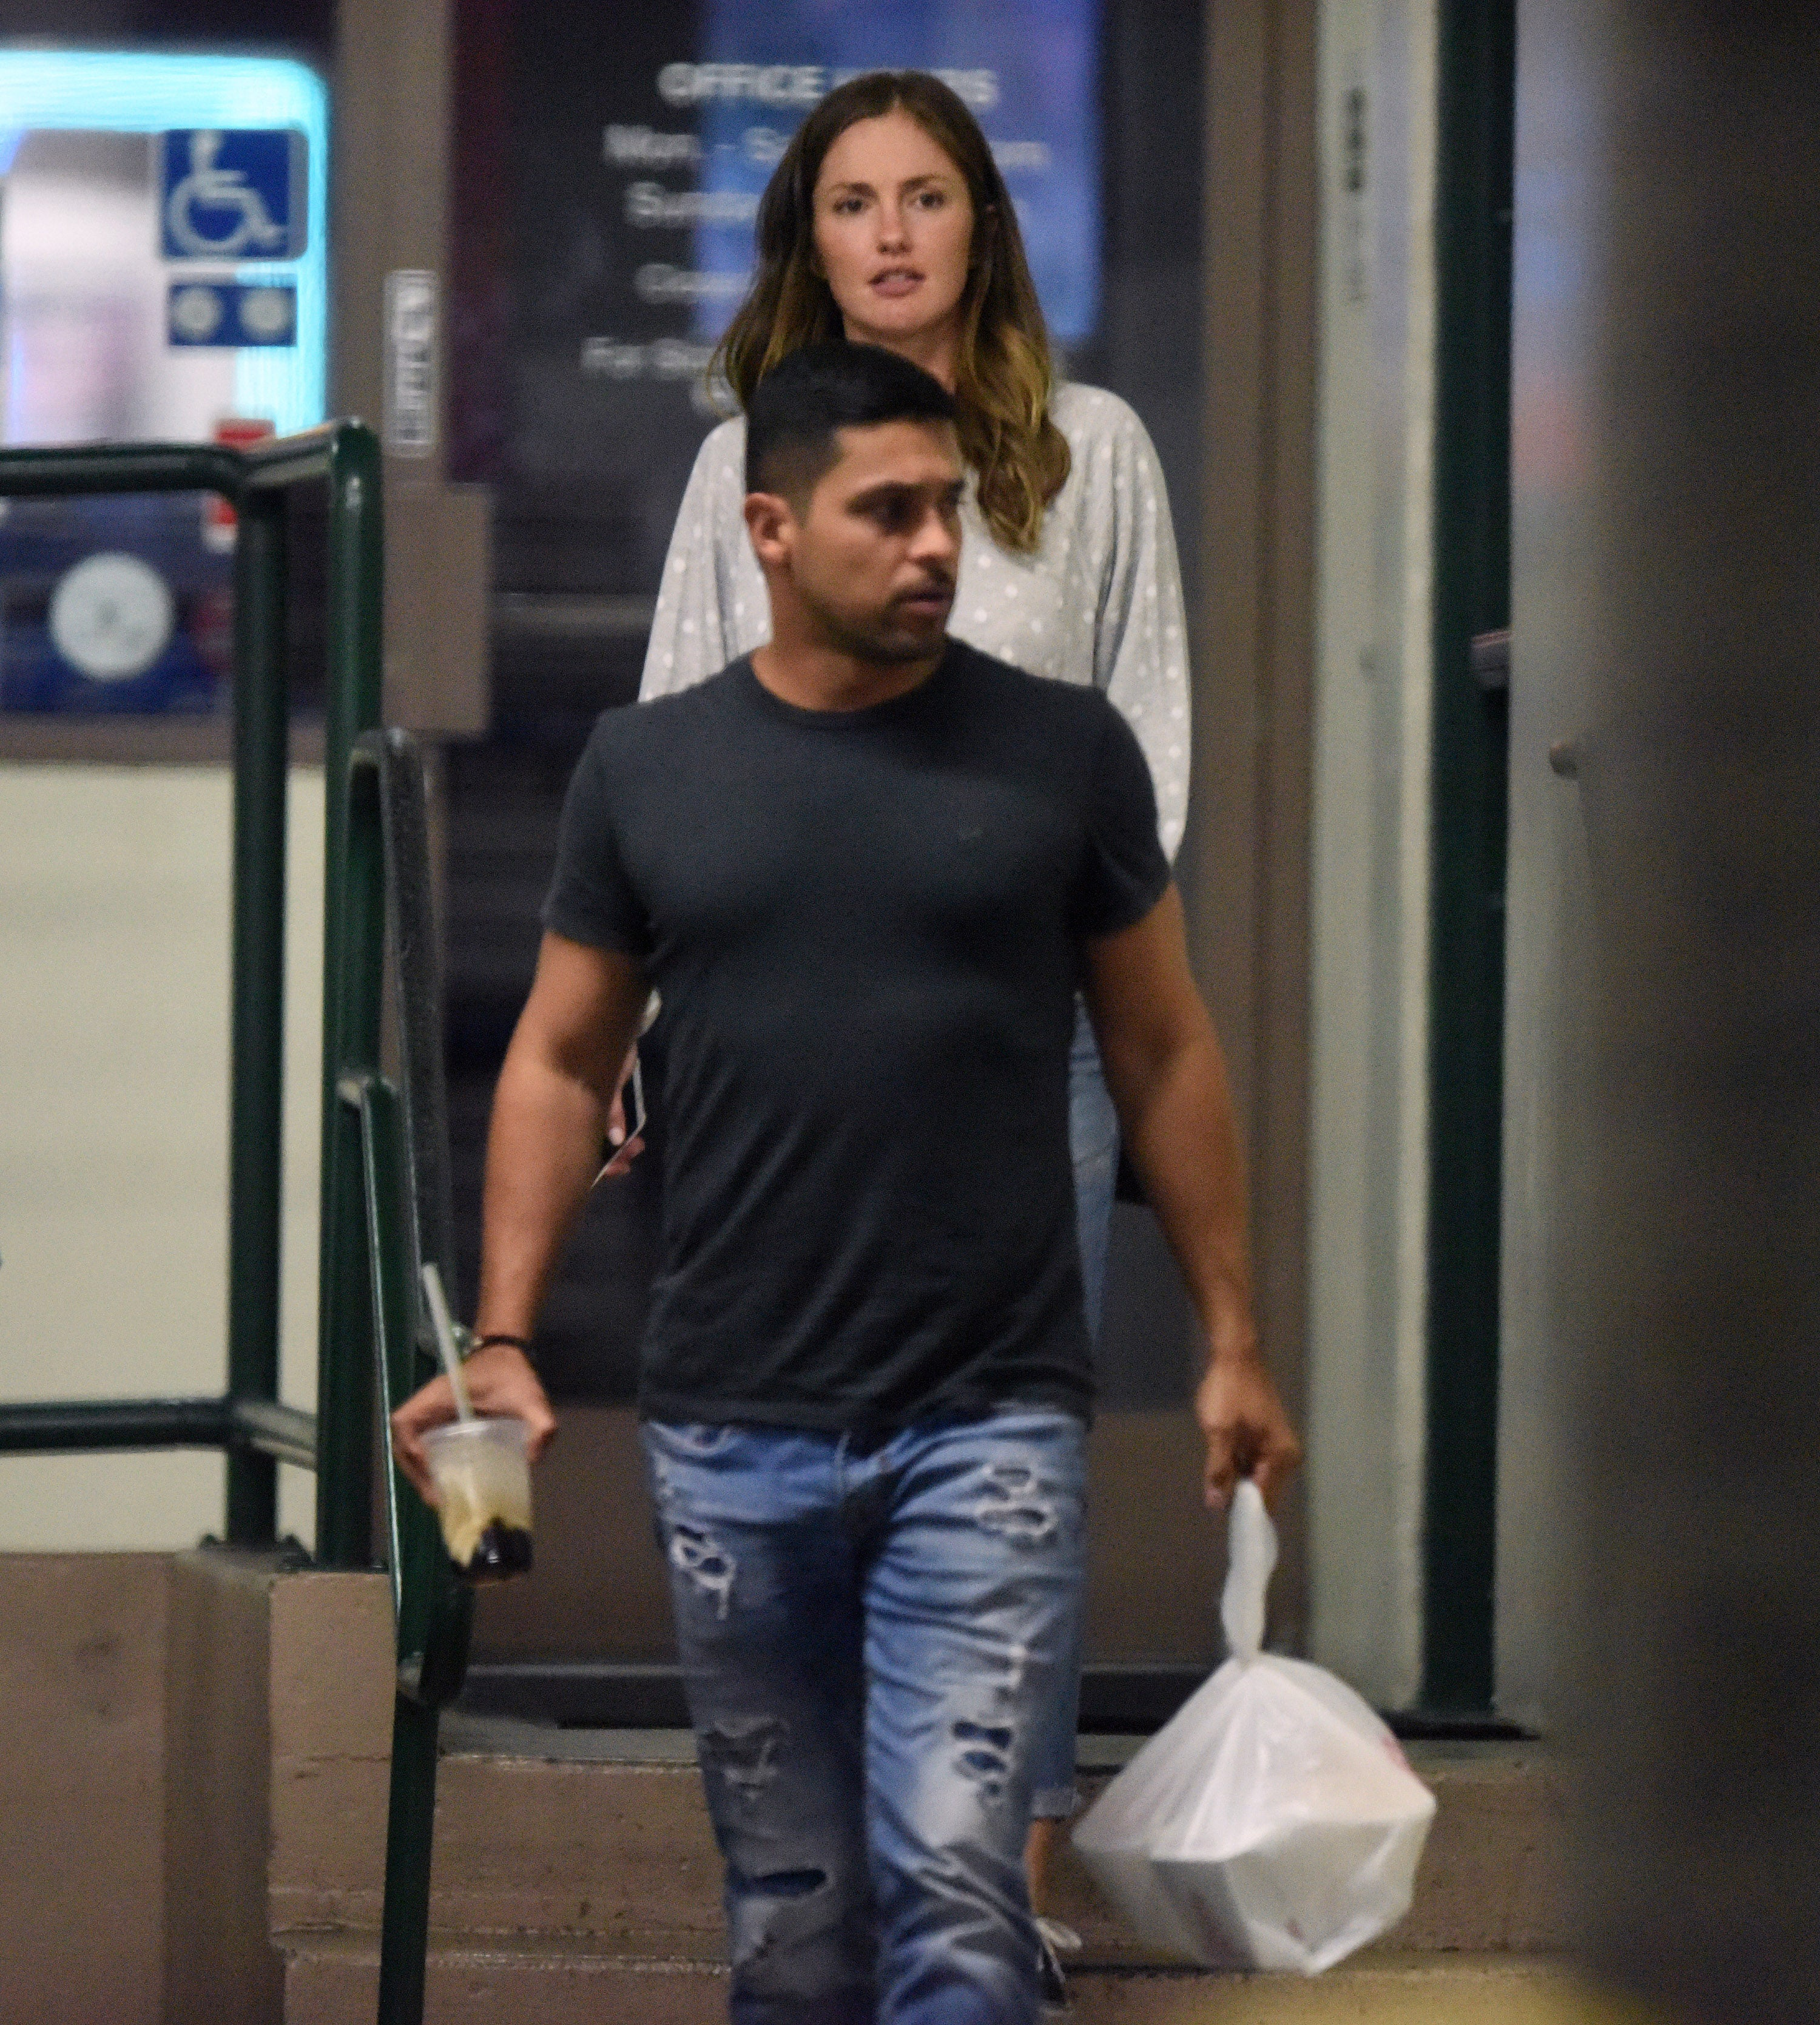 wilmer dating site Demi lovato & wilmer valderrama call it quits after six years of dating demi lovato and her longtime love wilmer valderrama have broken up after six years of dating.